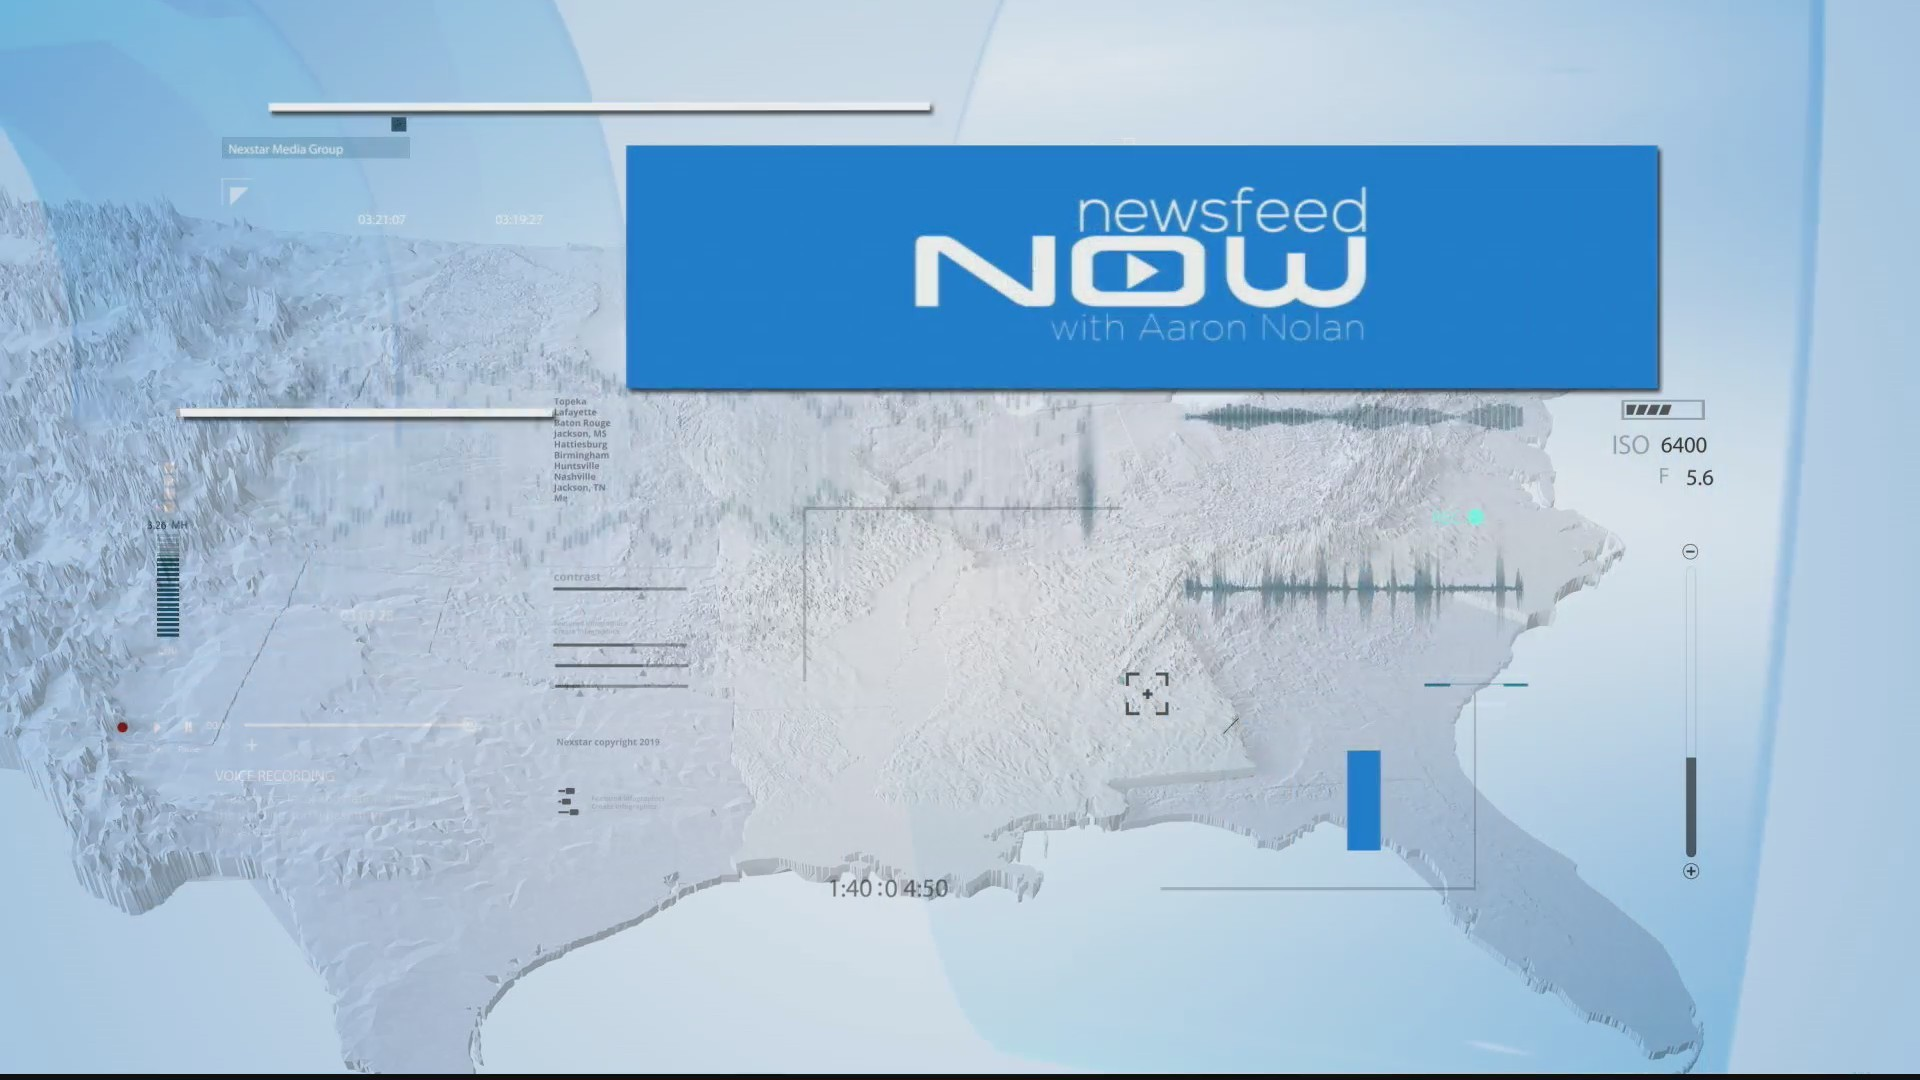 Newsfeed_Now__Debut_Episode_0_20190204174743